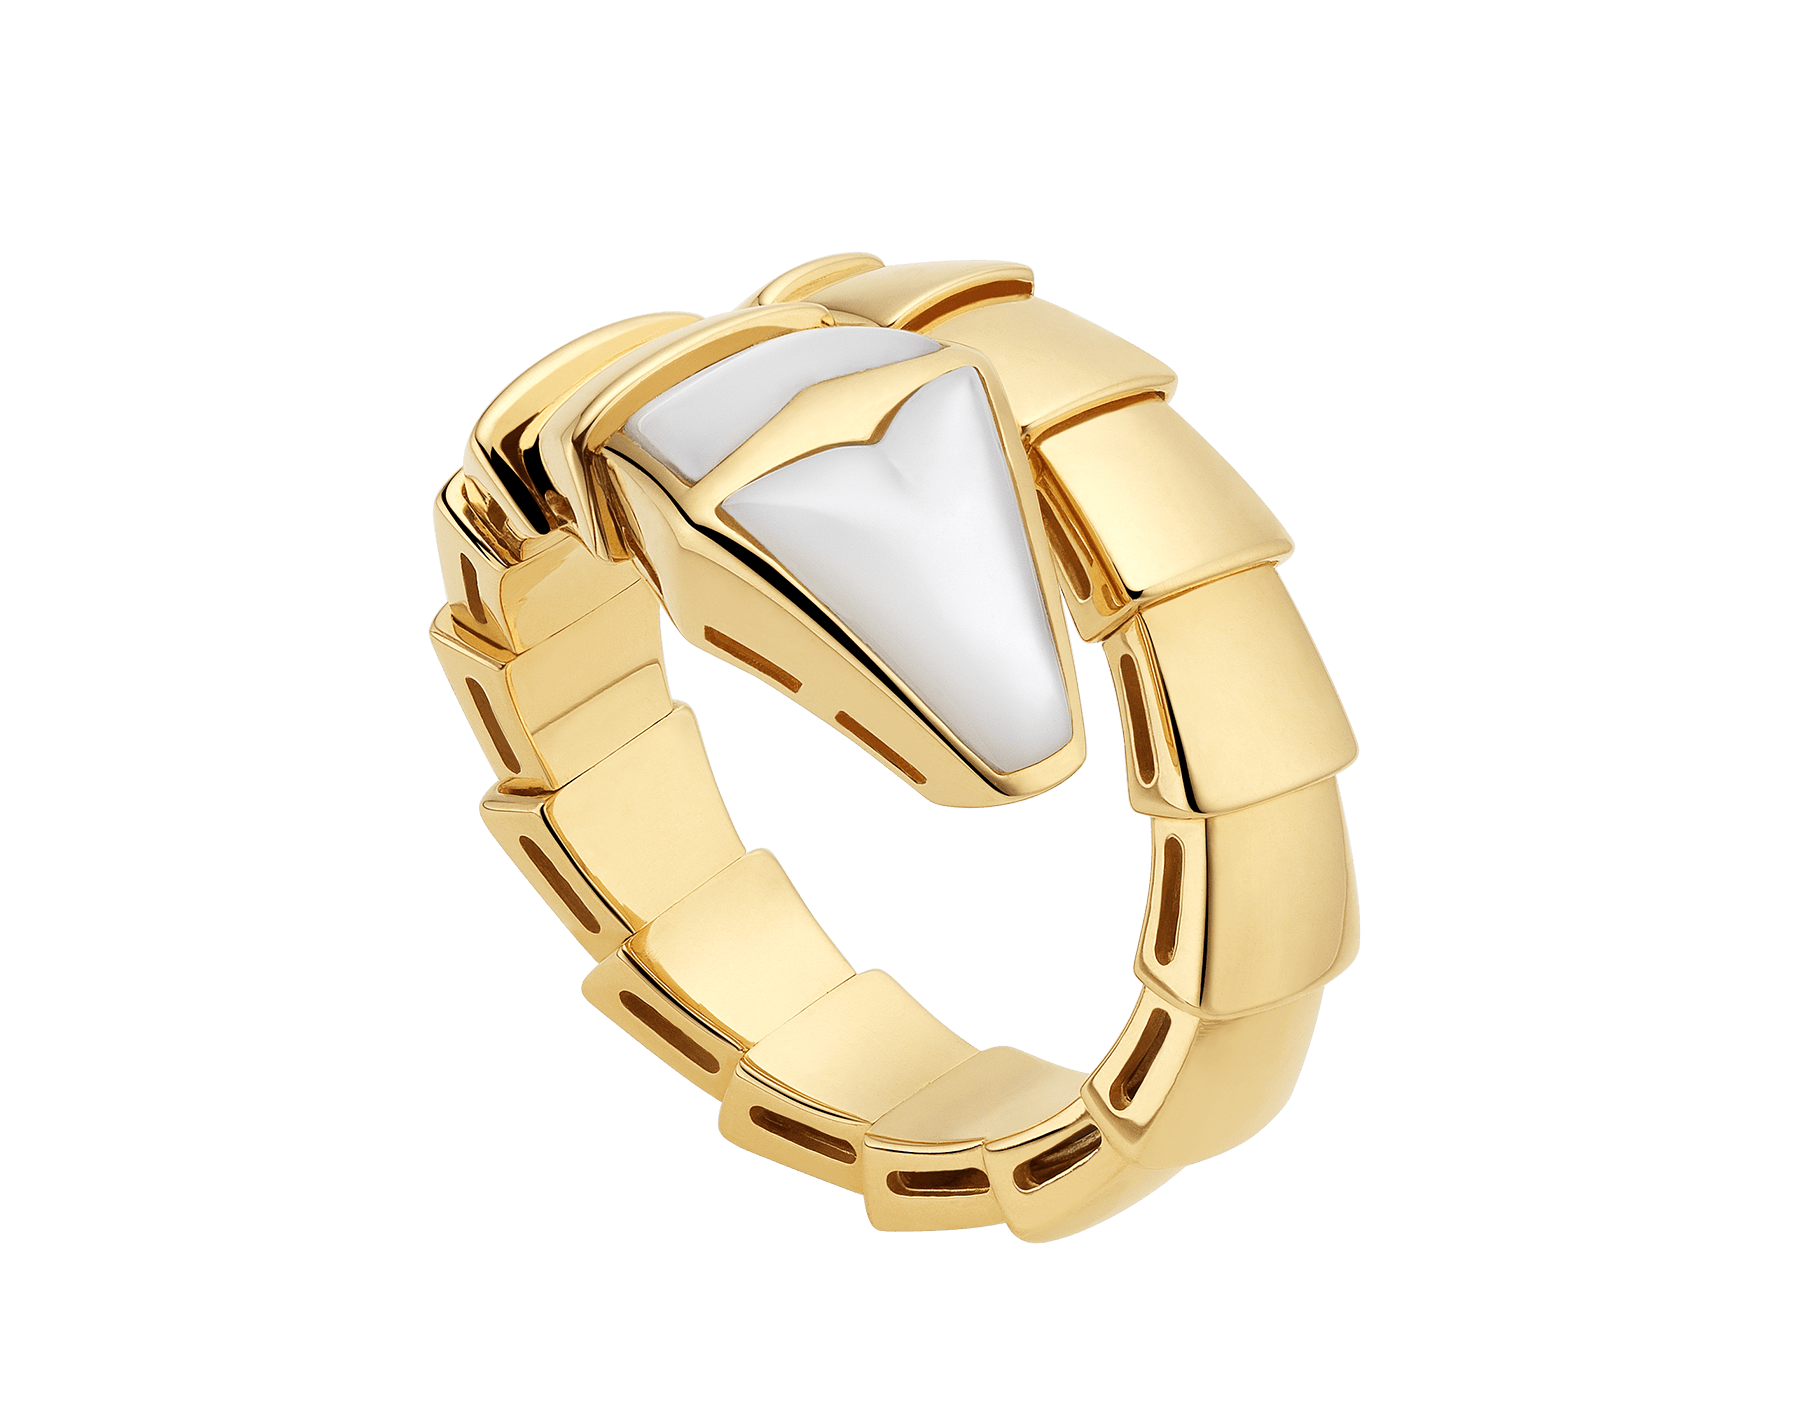 Serpenti one-coil ring in 18 kt yellow gold, set with mother-of-pearl on the head. AN855765 image 1